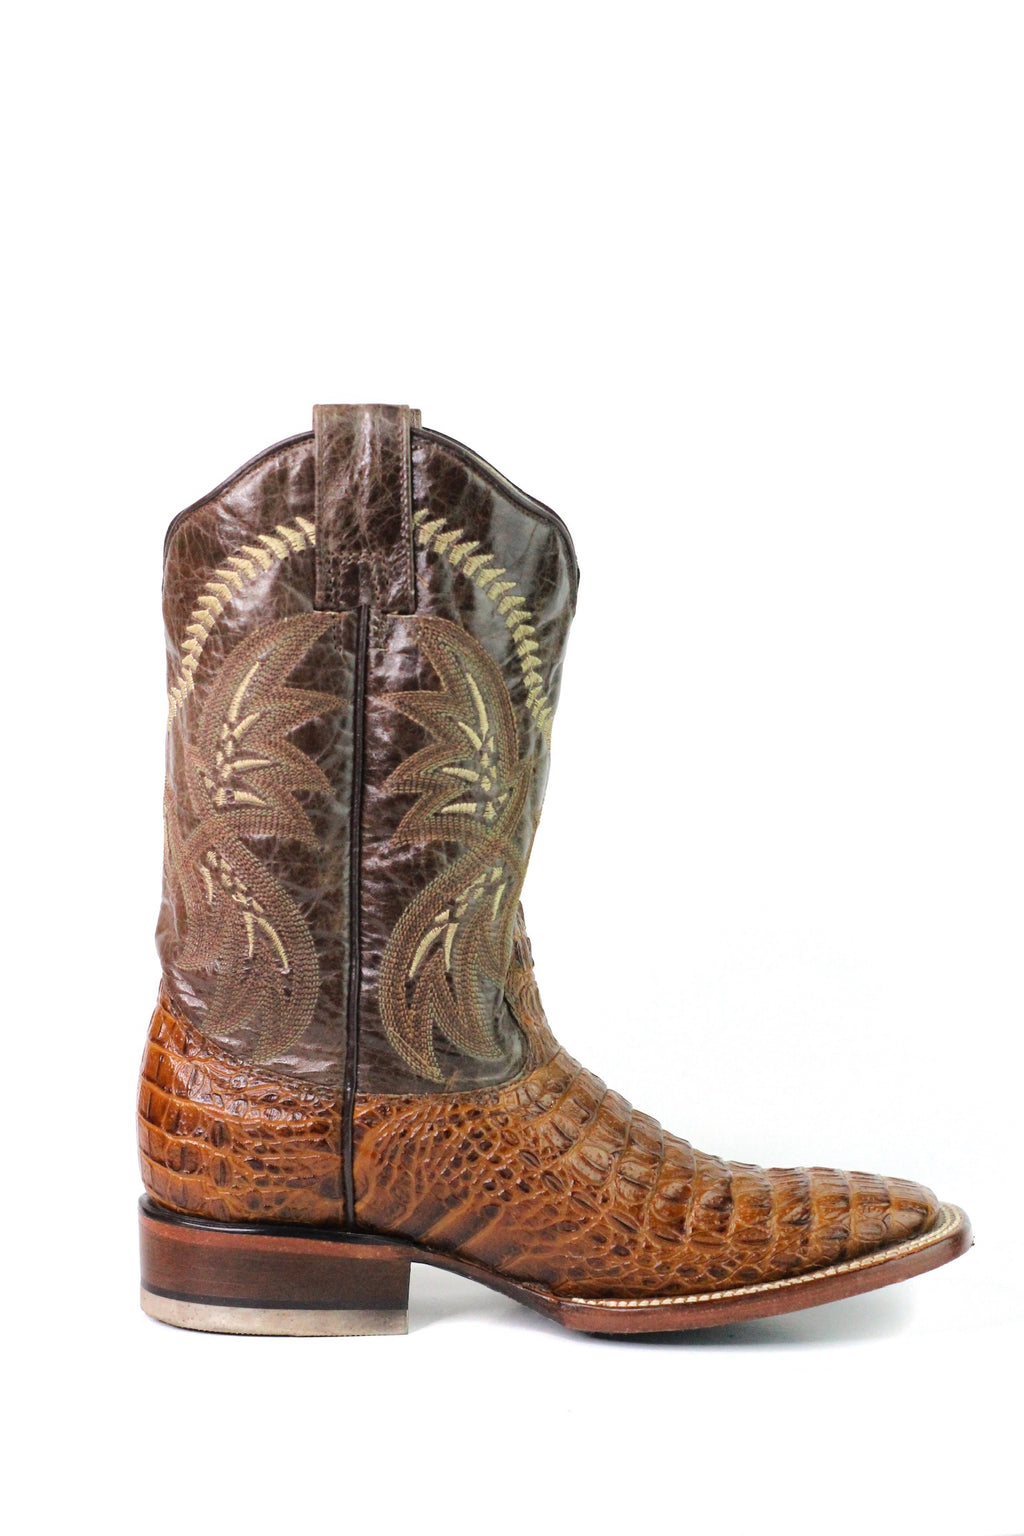 CT Crocodile Leather Print Men's Boot